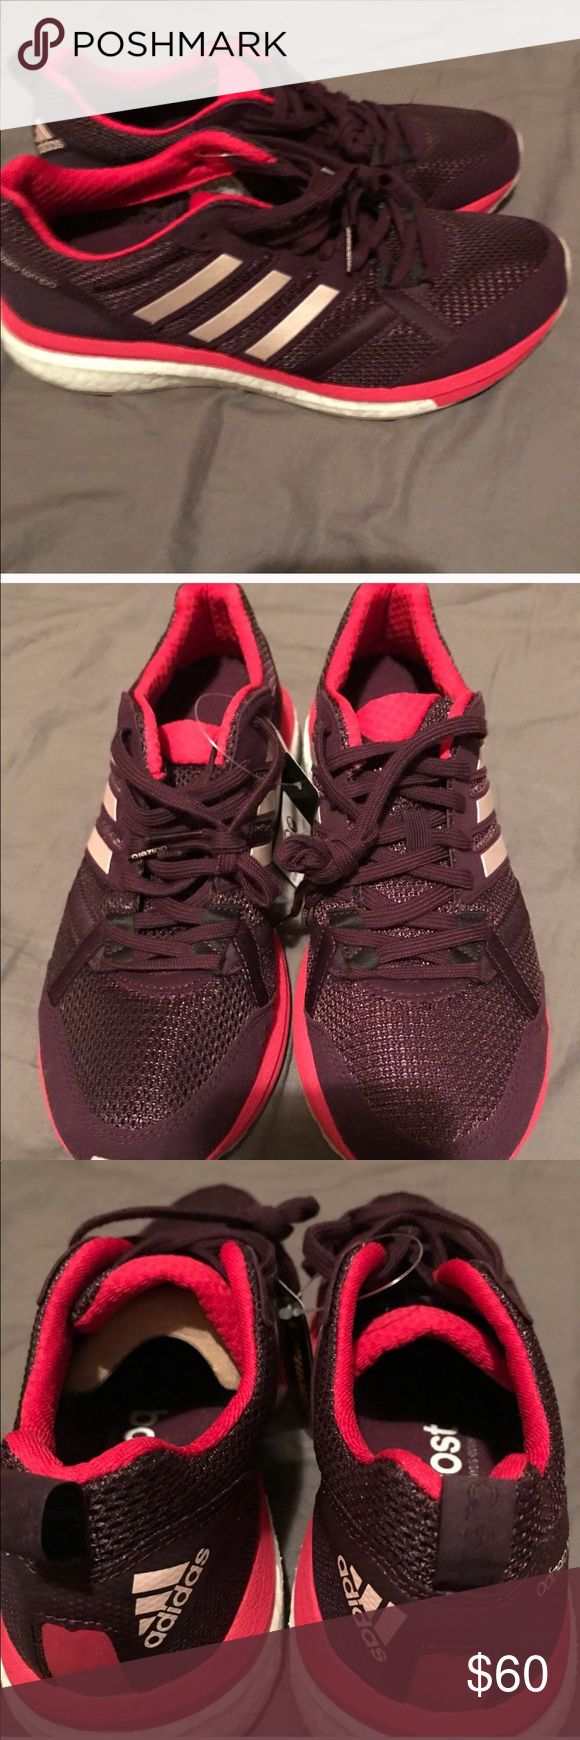 Adidas endless boost energy shoes Adidas Boost Endless Energy shoes, brand new adidas Shoes Athletic Shoes